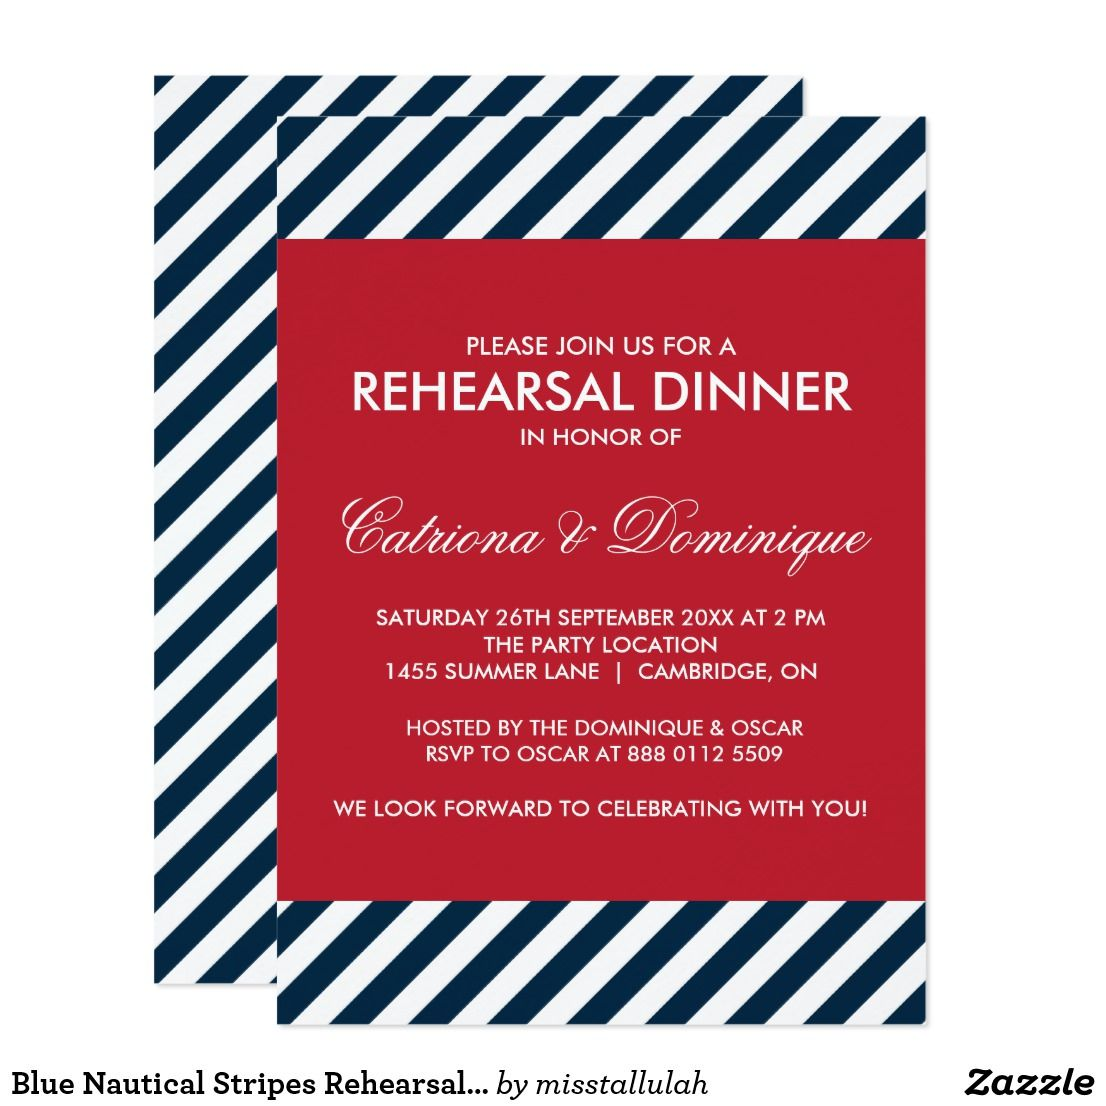 Blue Nautical Stripes Rehearsal Dinner Invitation | Wedding ...